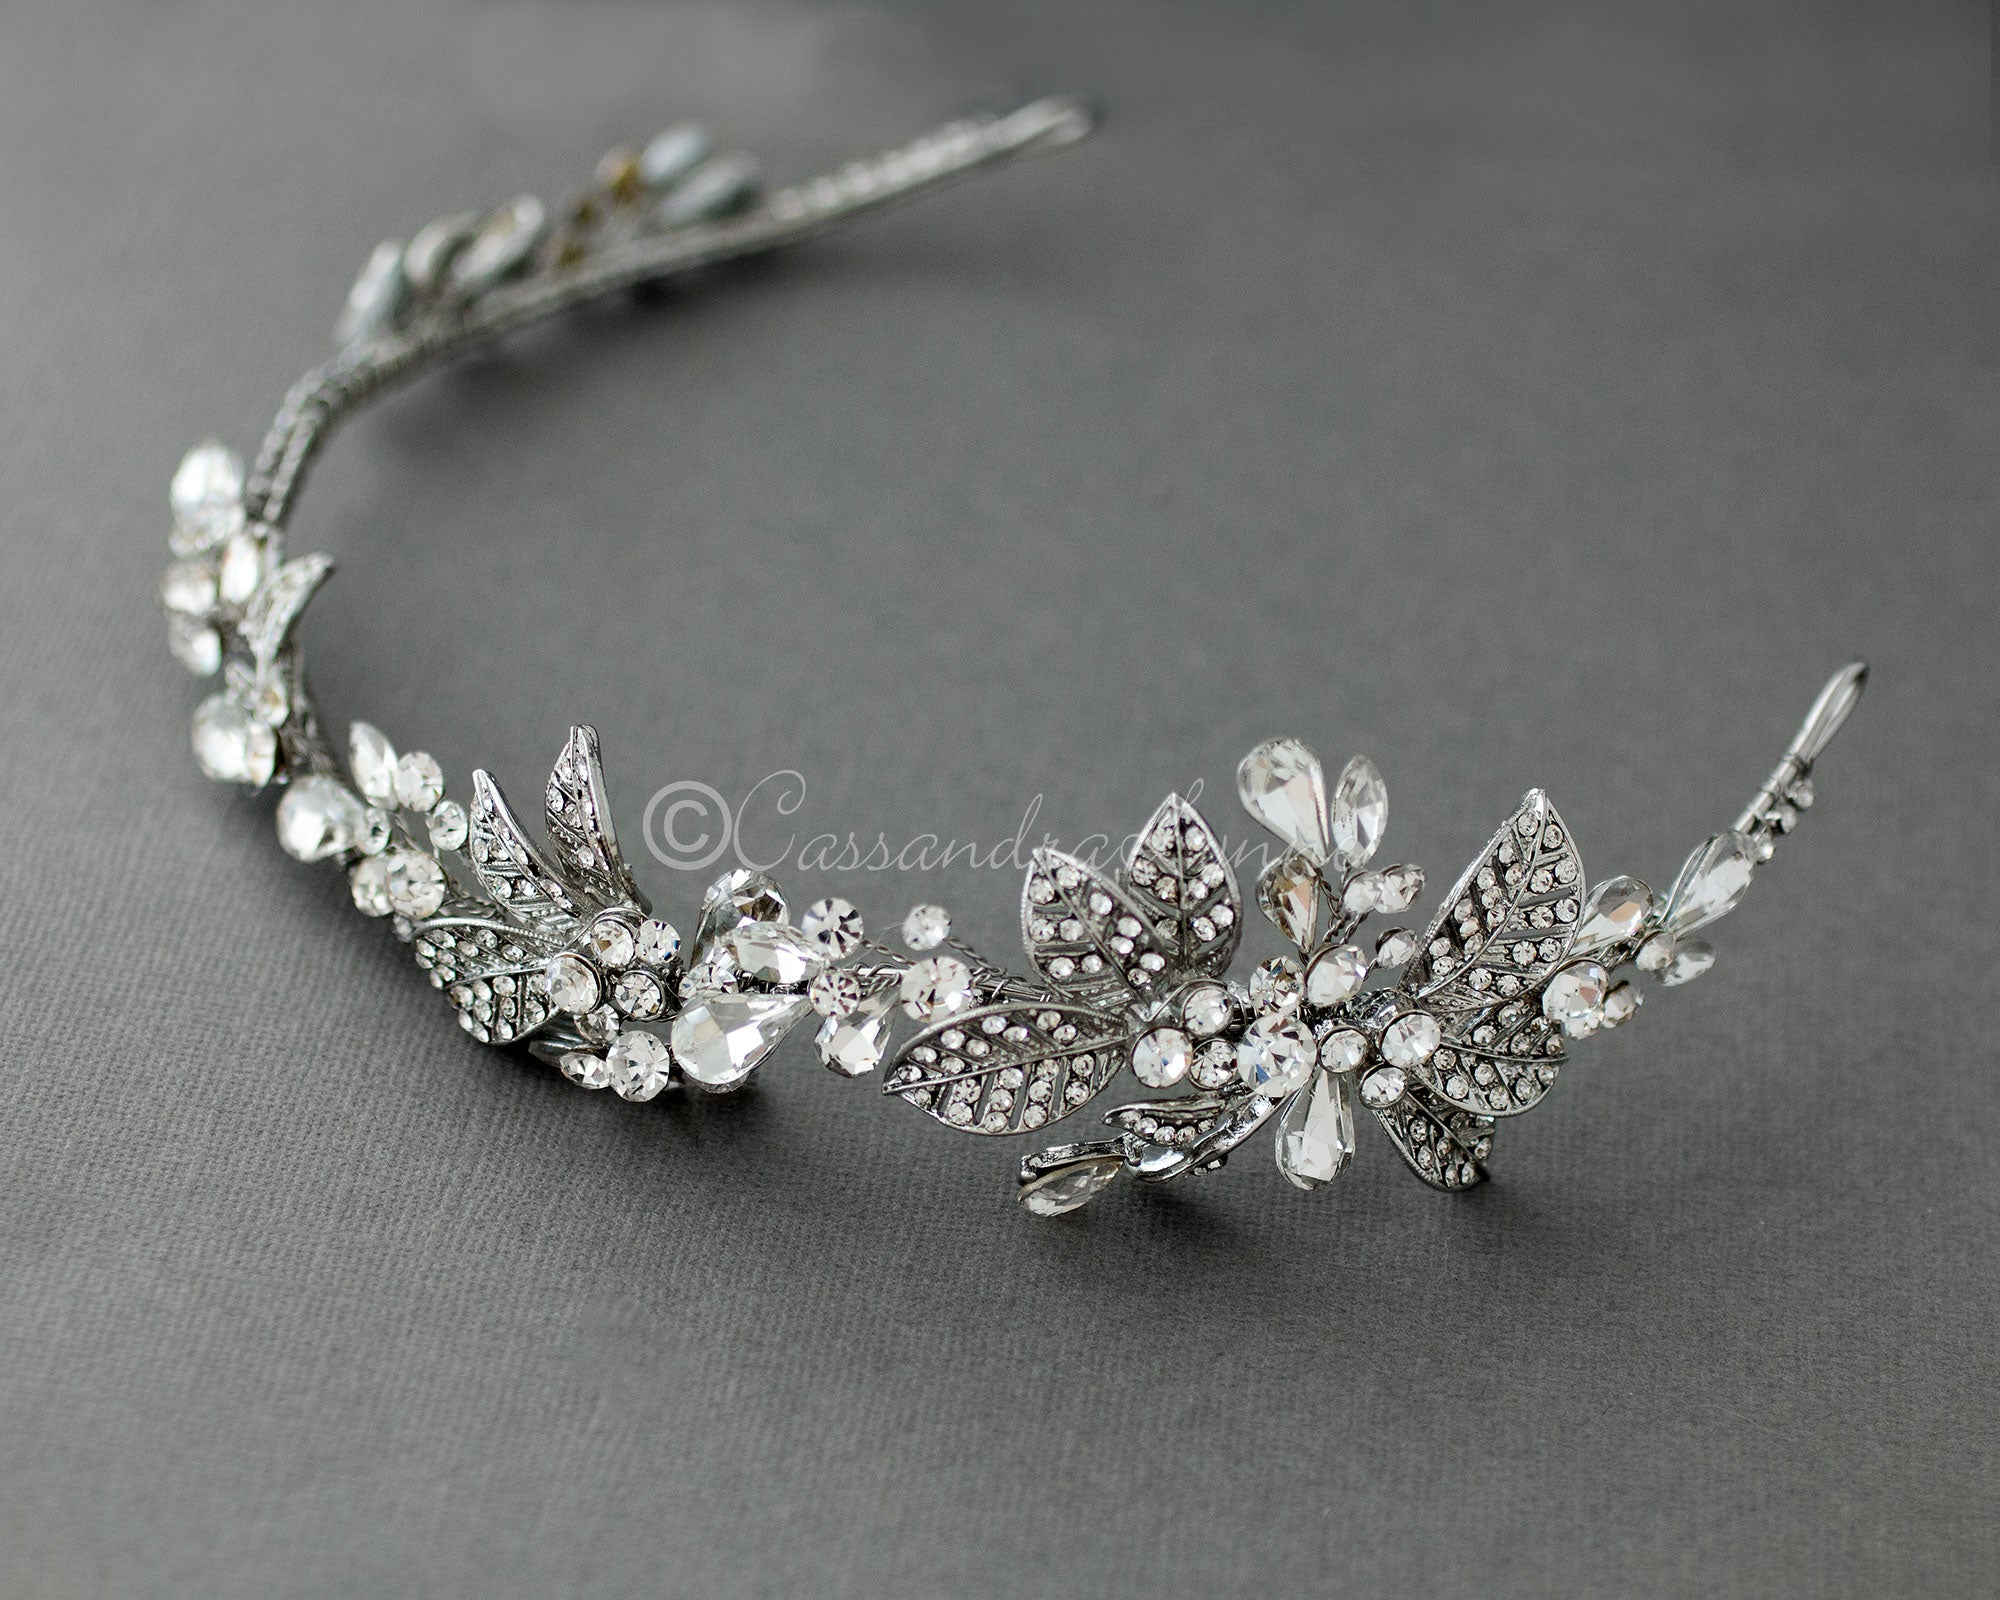 Antique Silver Wedding Headband